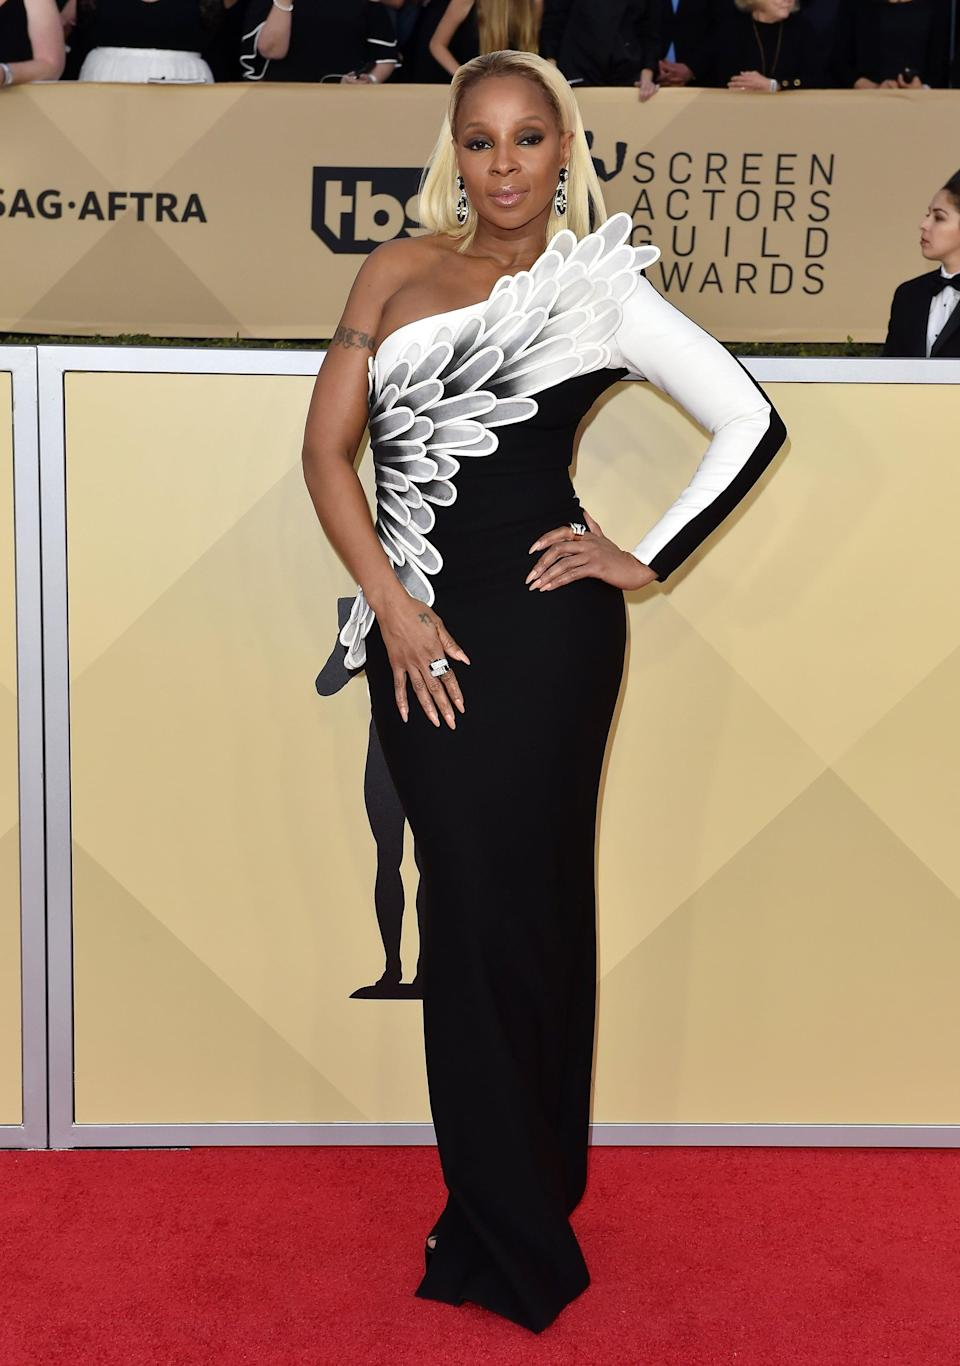 <p>Law went for a Black Swan approach for Mary J. Blige for an awards show in 2018 - and nailed it with this Jean-Louis Sabaji dress.</p>